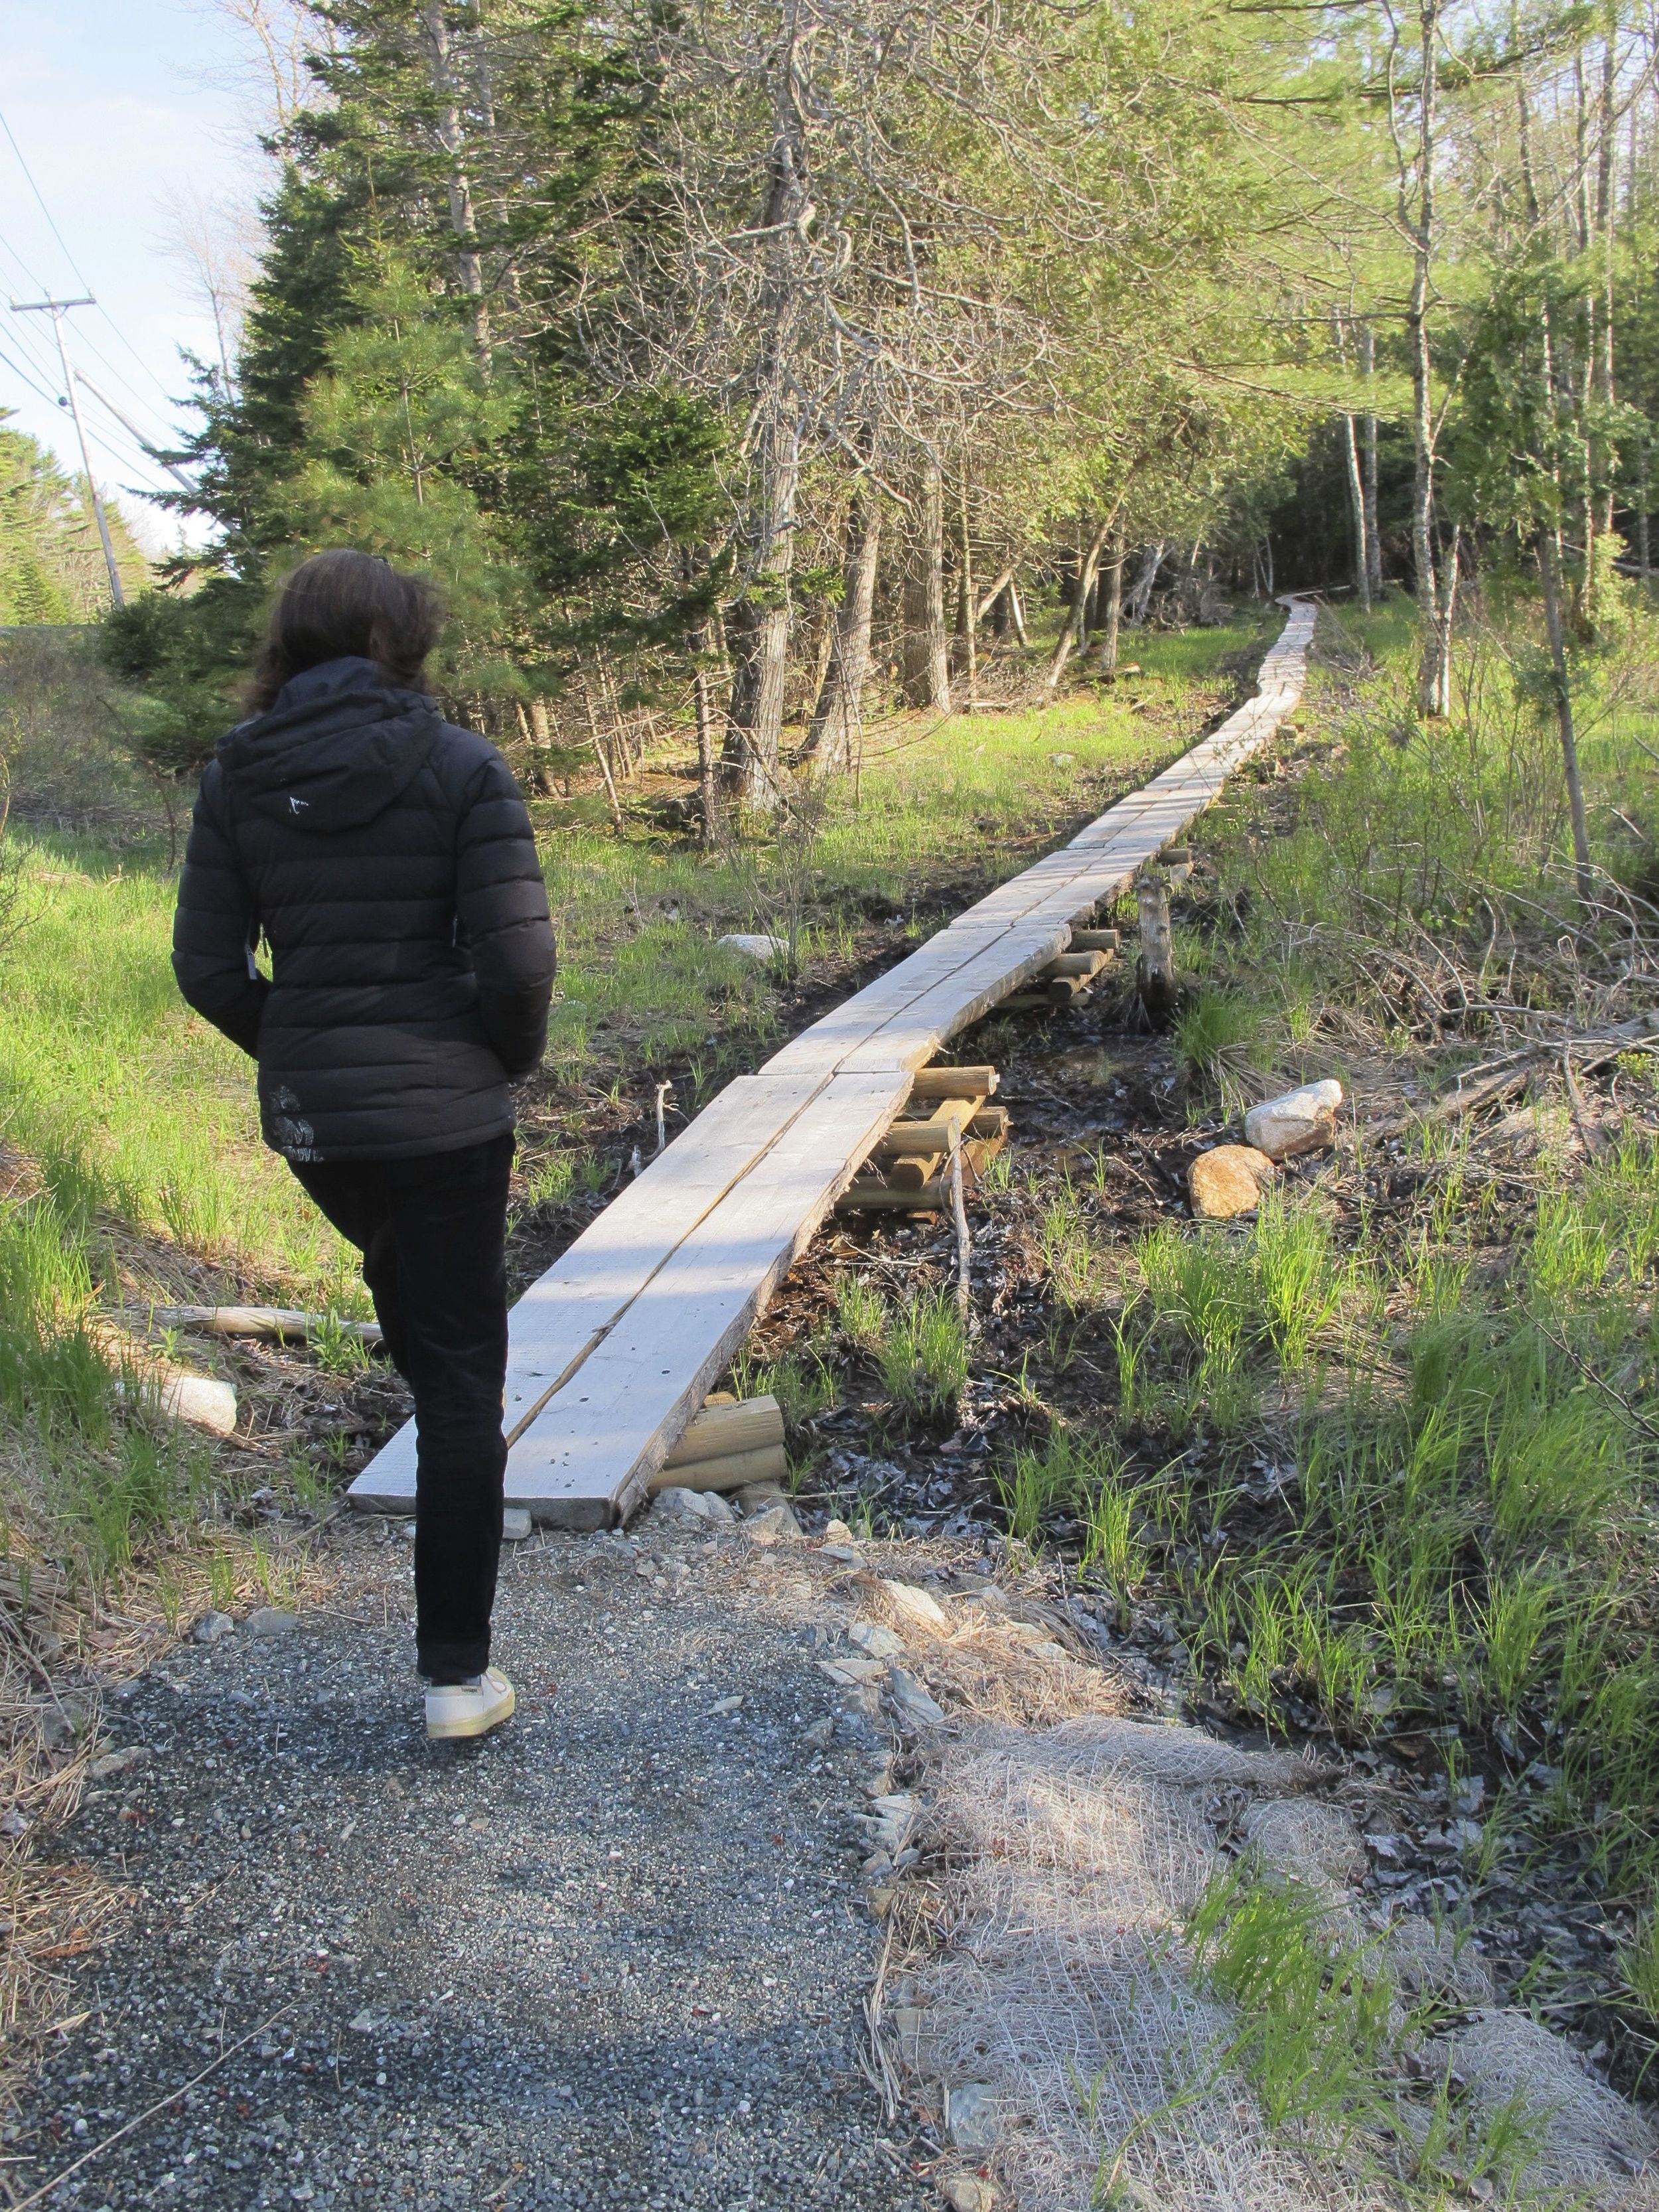 The trail has been improved in parts with a split-log path, which keeps hikers' dry in boggier sections.